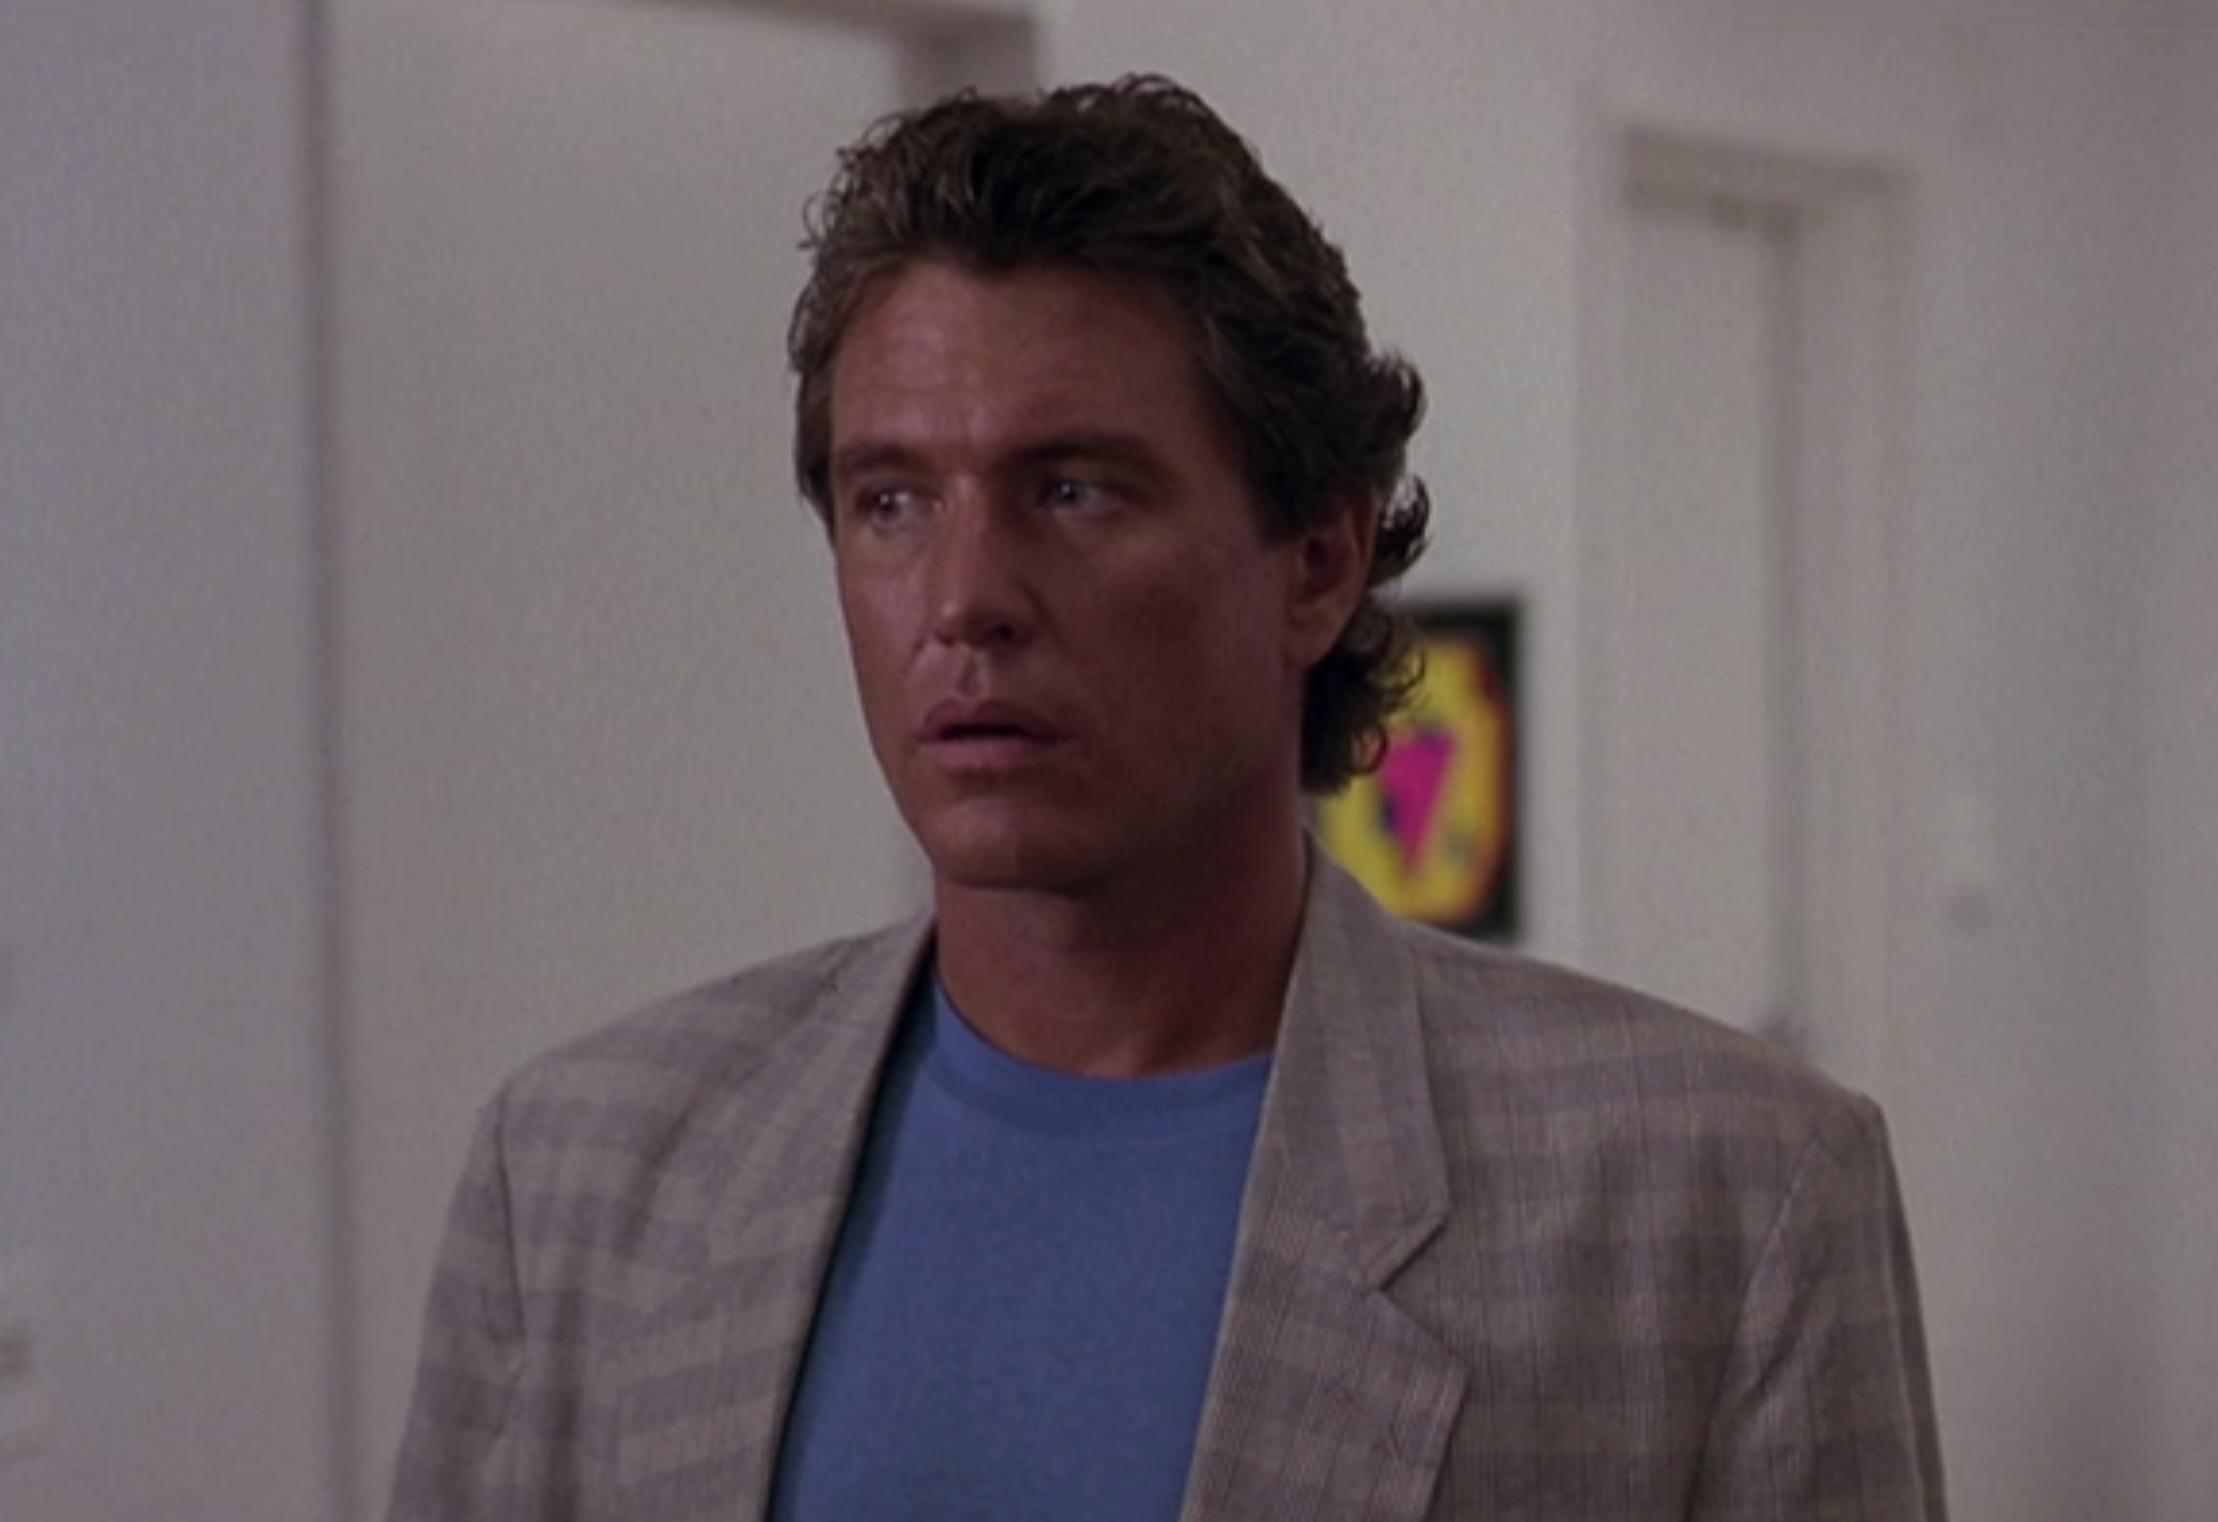 z2s7sop 25 Things You Didn't Know About Tom Berenger